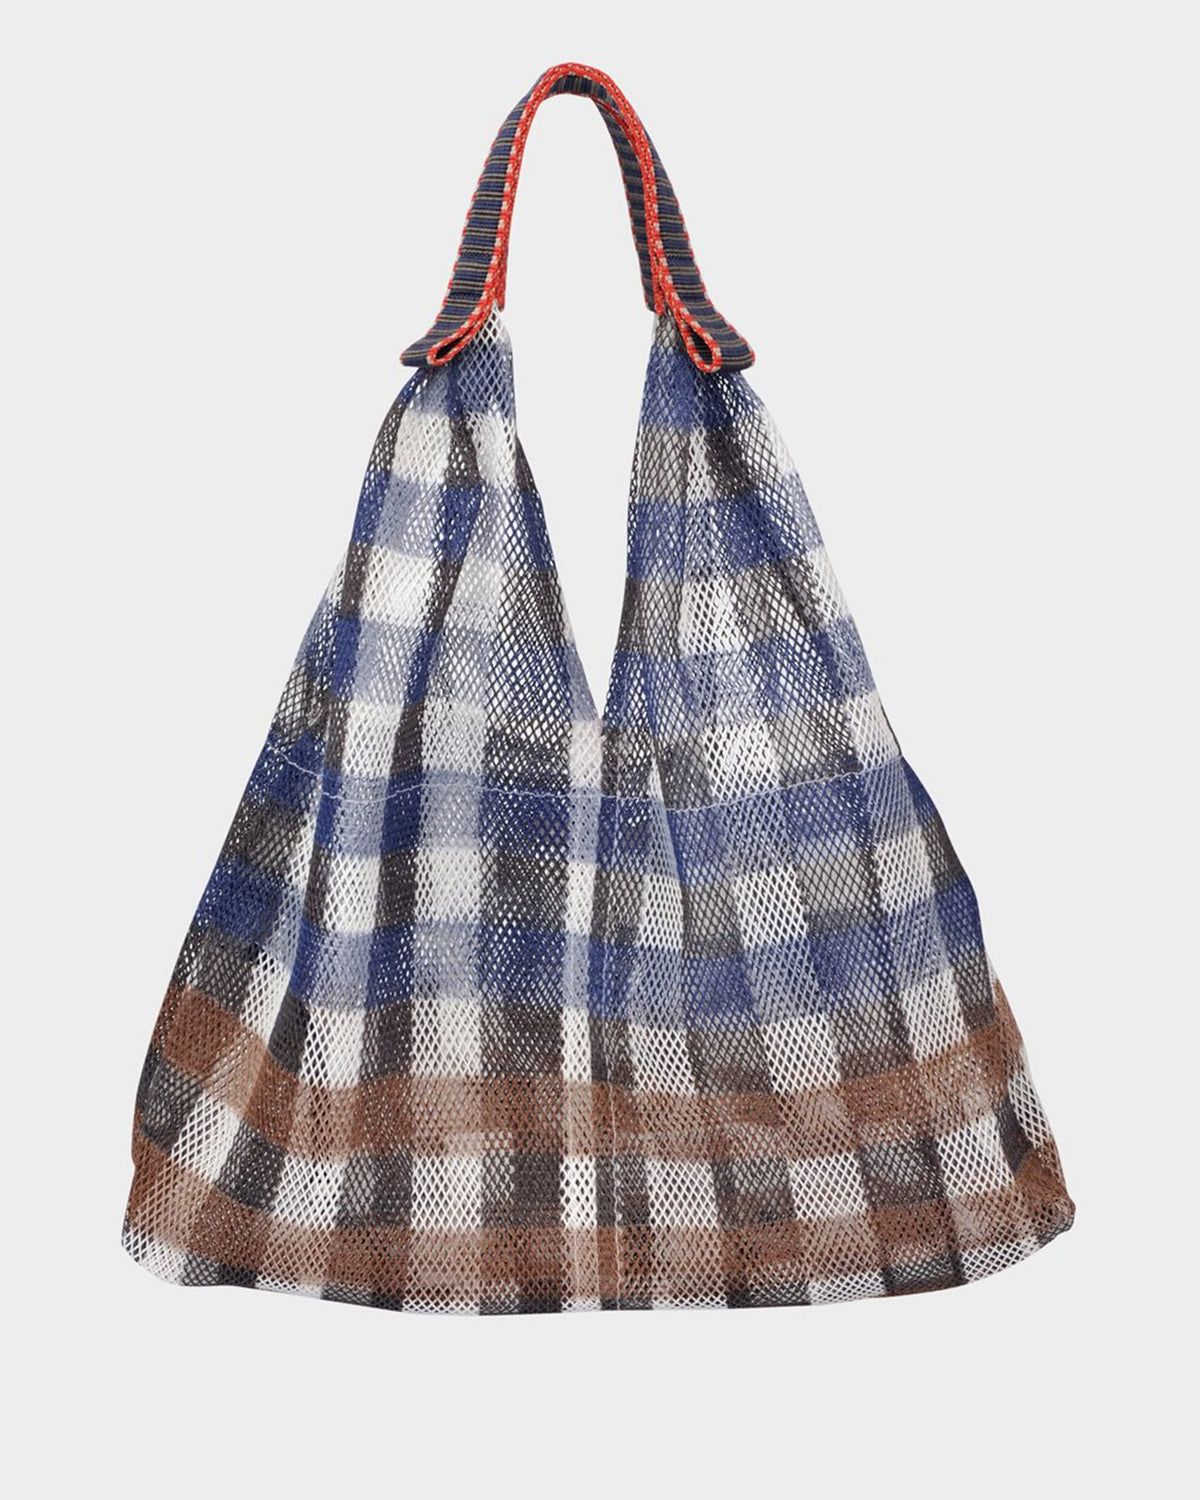 Épice Accessories Plaid Sac in Ultramarine